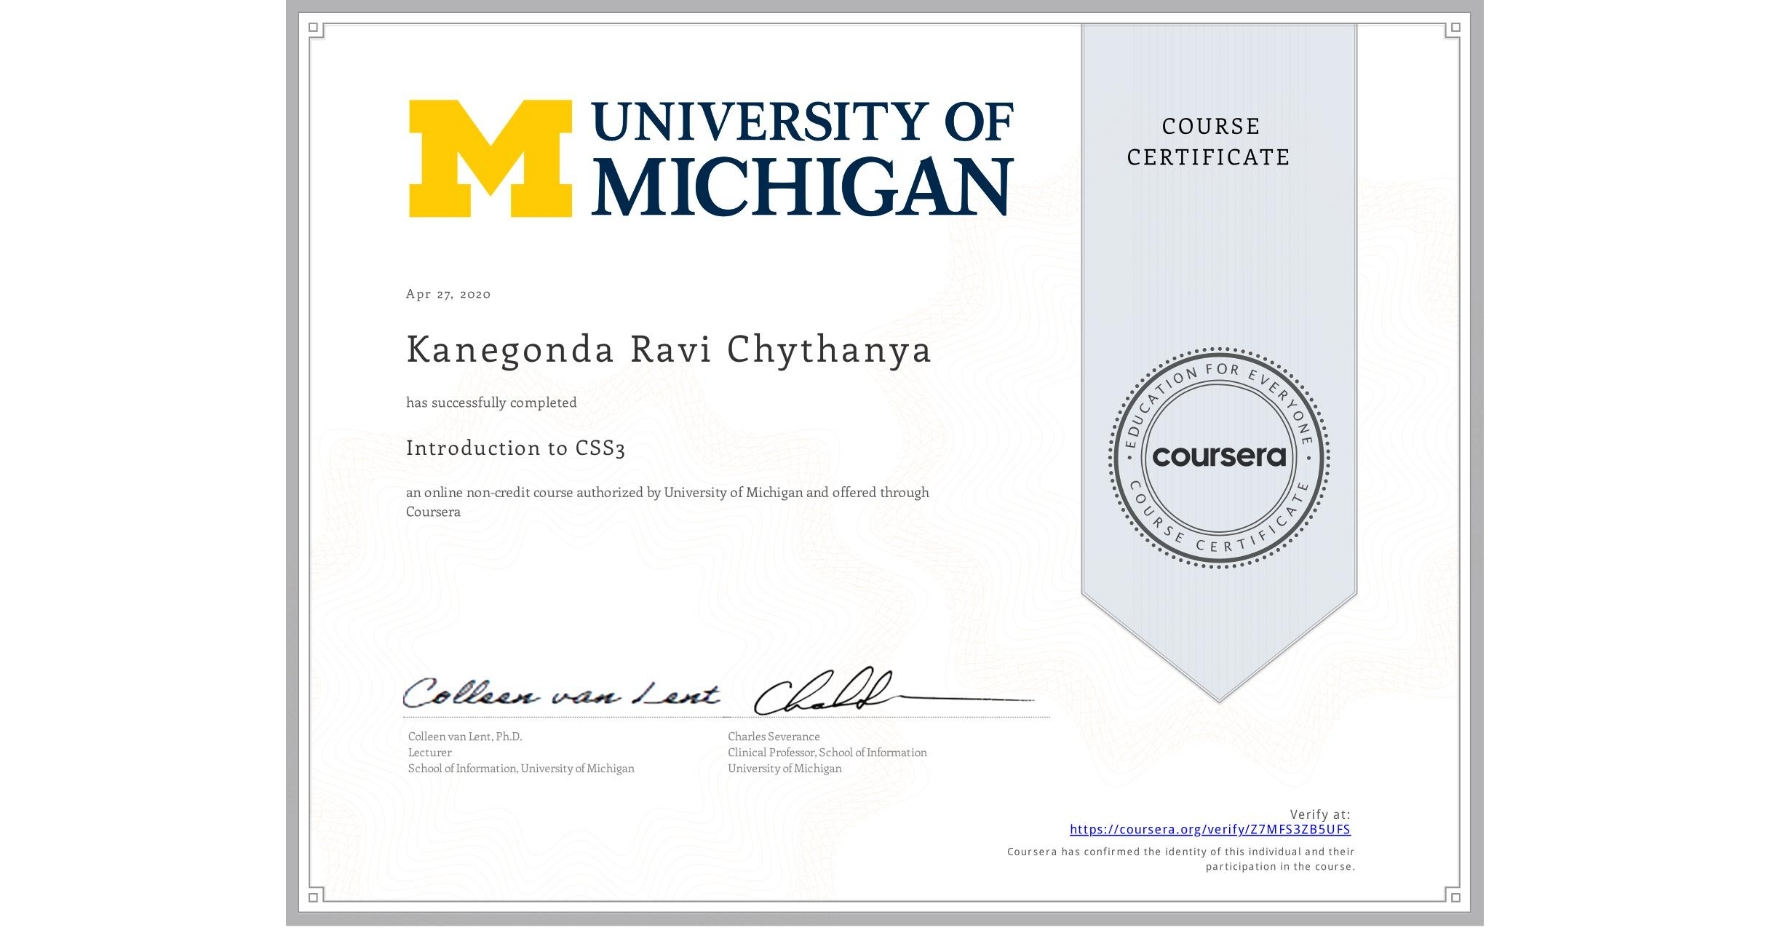 View certificate for Kanegonda Ravi Chythanya, Introduction to CSS3, an online non-credit course authorized by University of Michigan and offered through Coursera